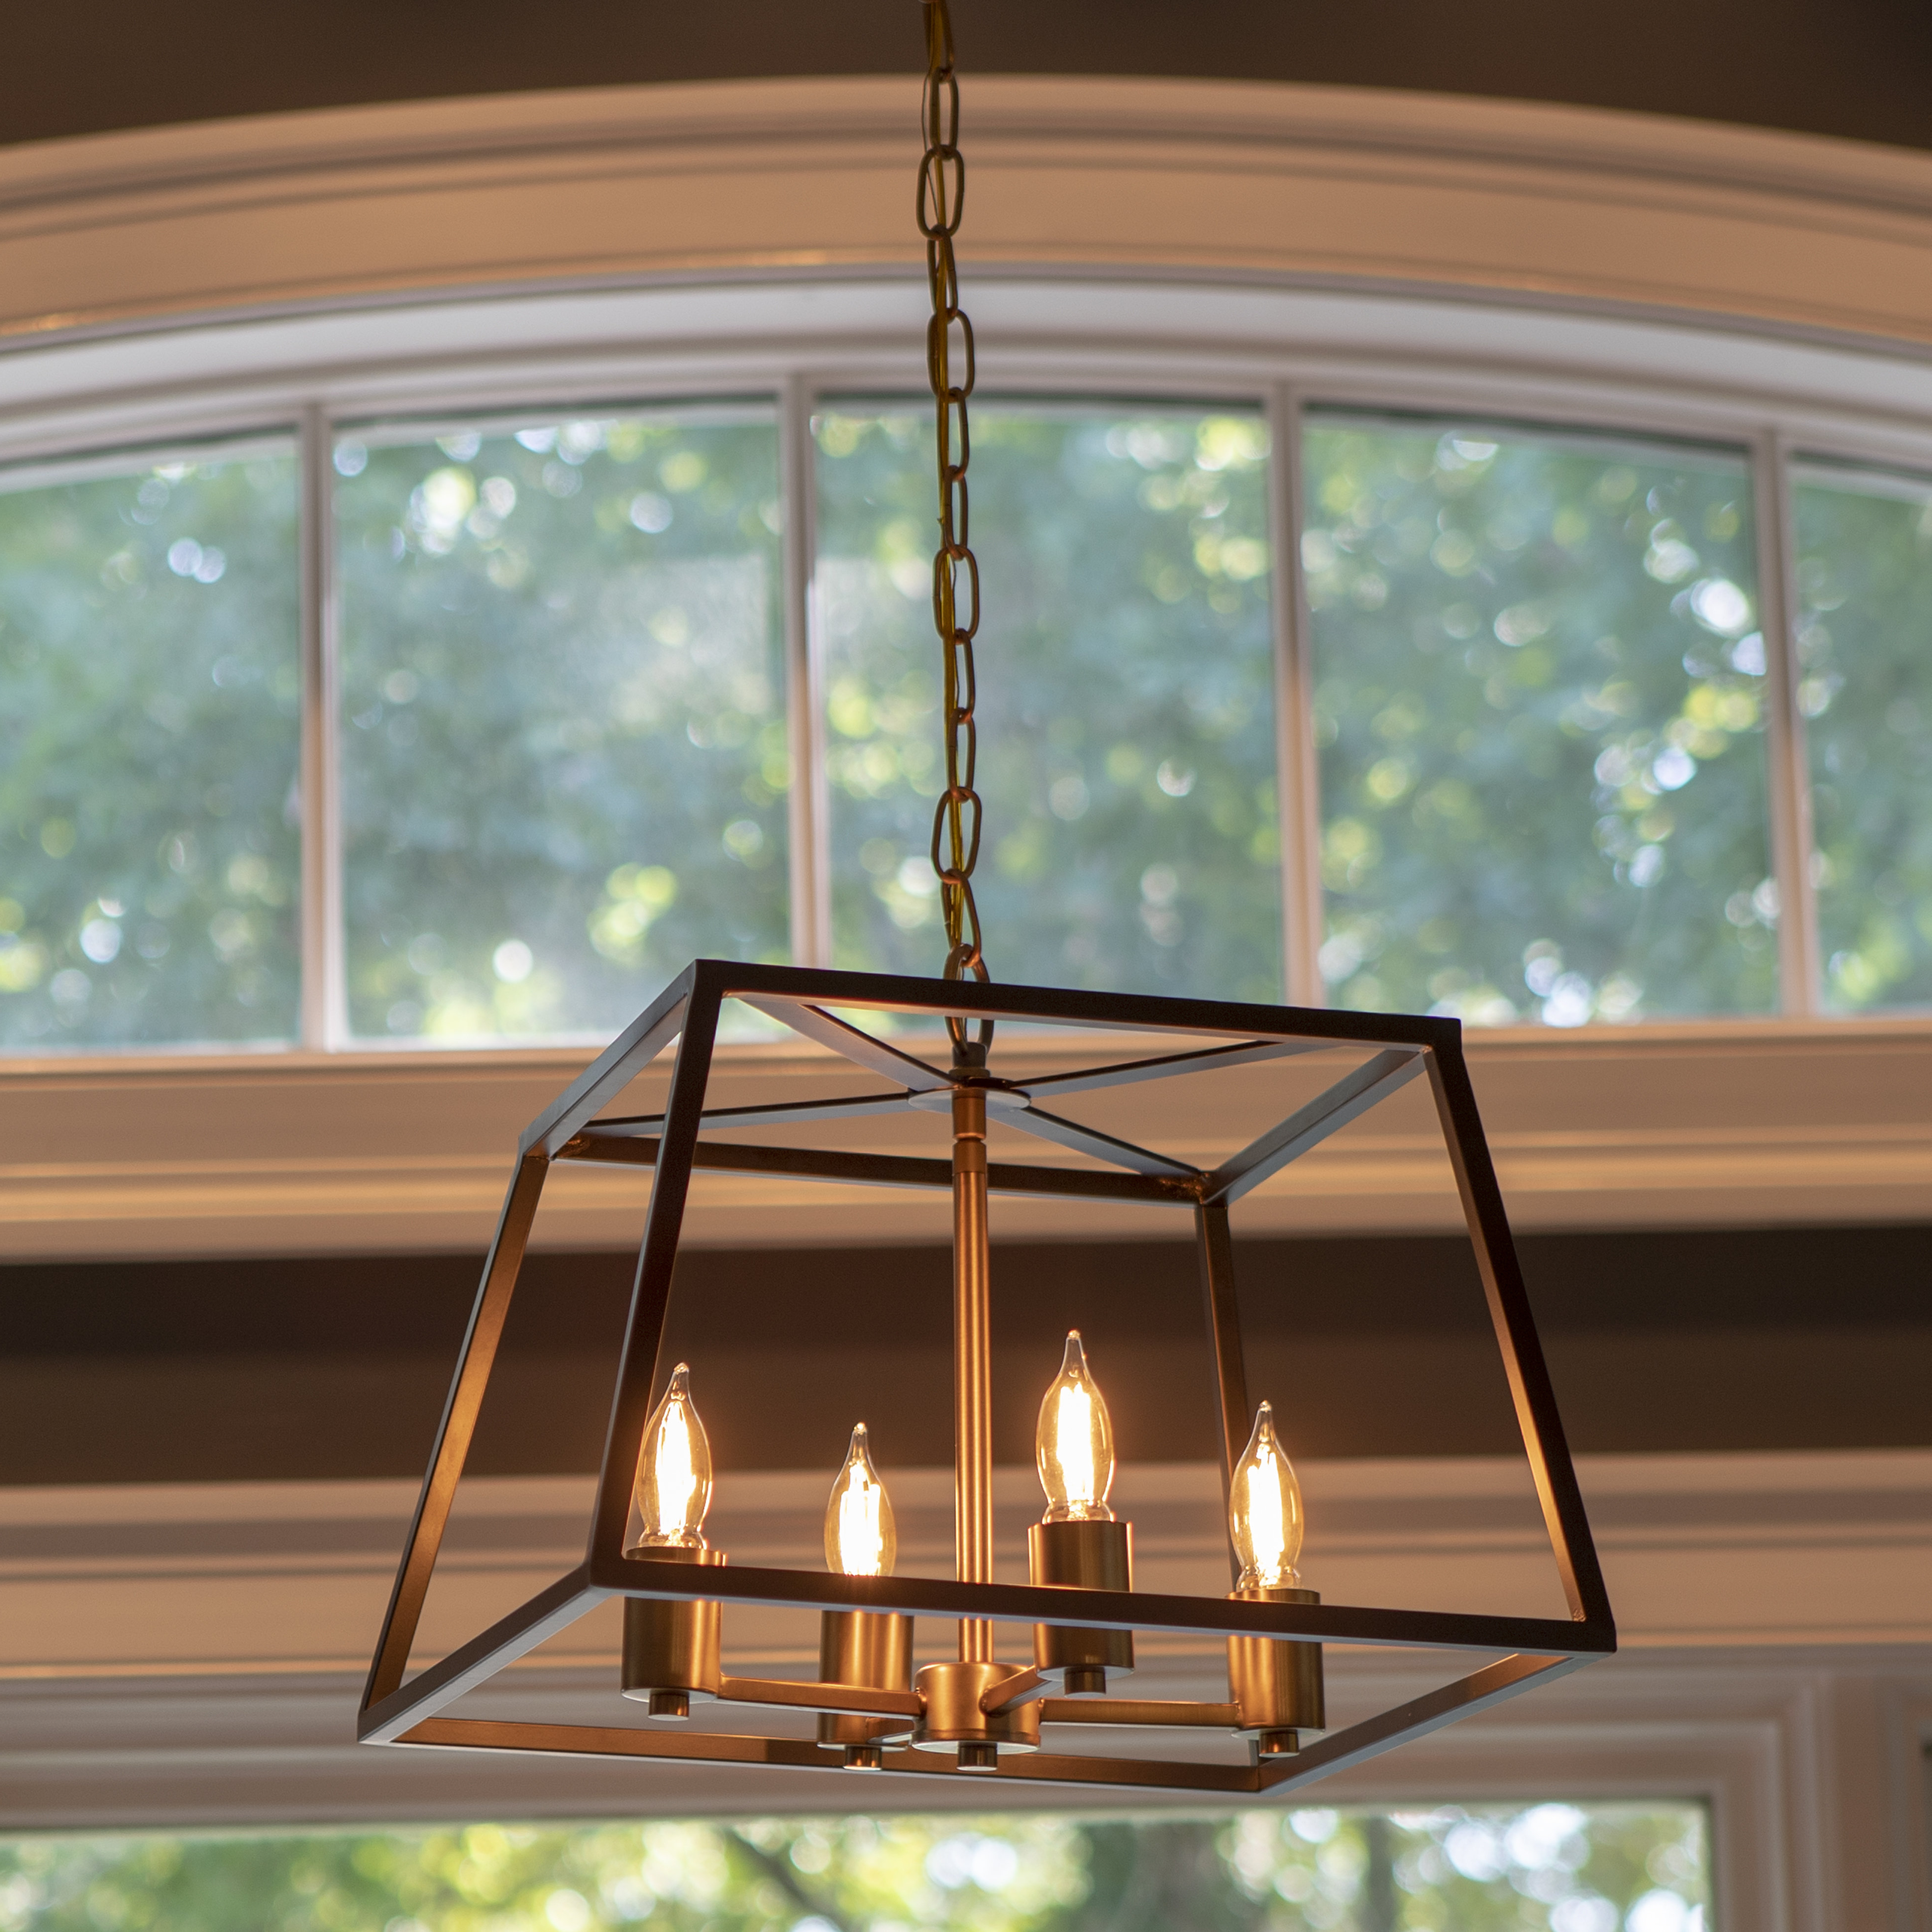 Most Current Richville 4 Light Square Chandelier Pertaining To Delon 4 Light Square Chandeliers (View 7 of 25)